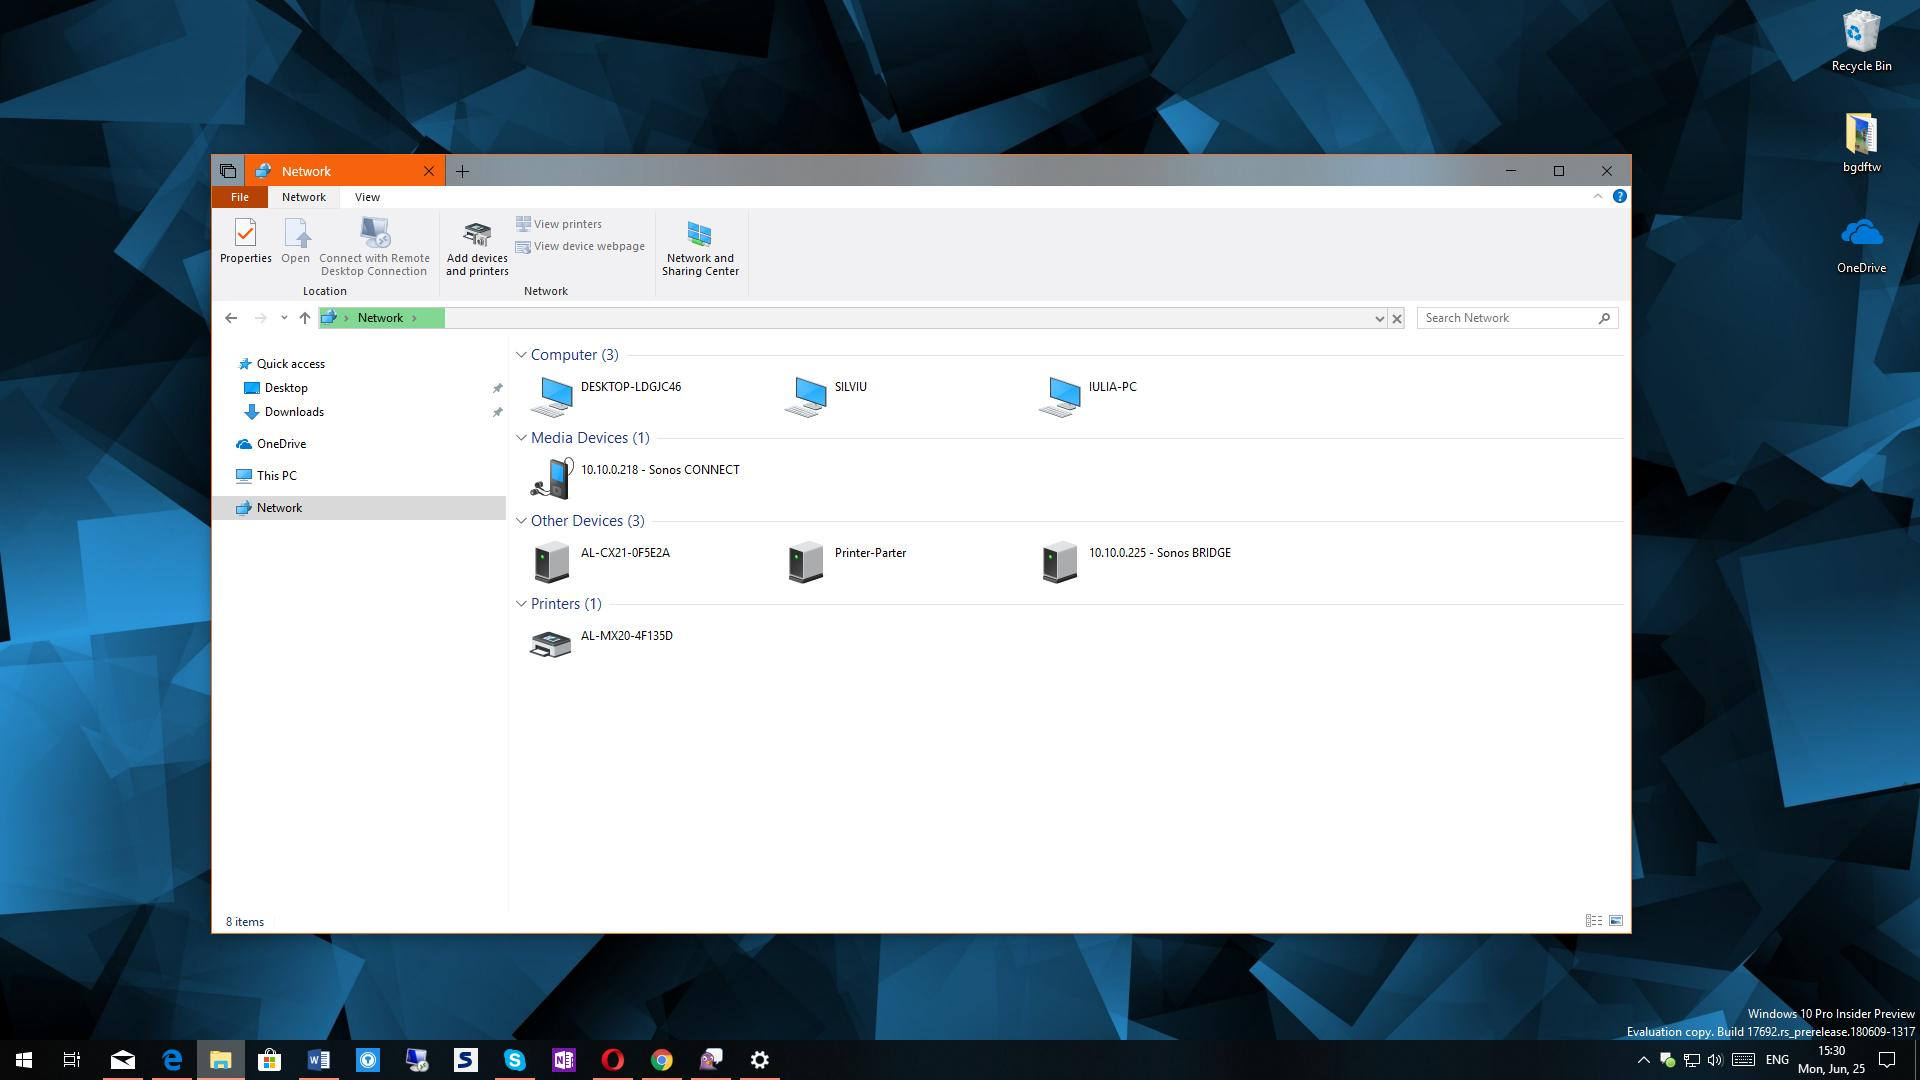 How to Fix Windows 10 April 2018 Update Breaking Network Access in